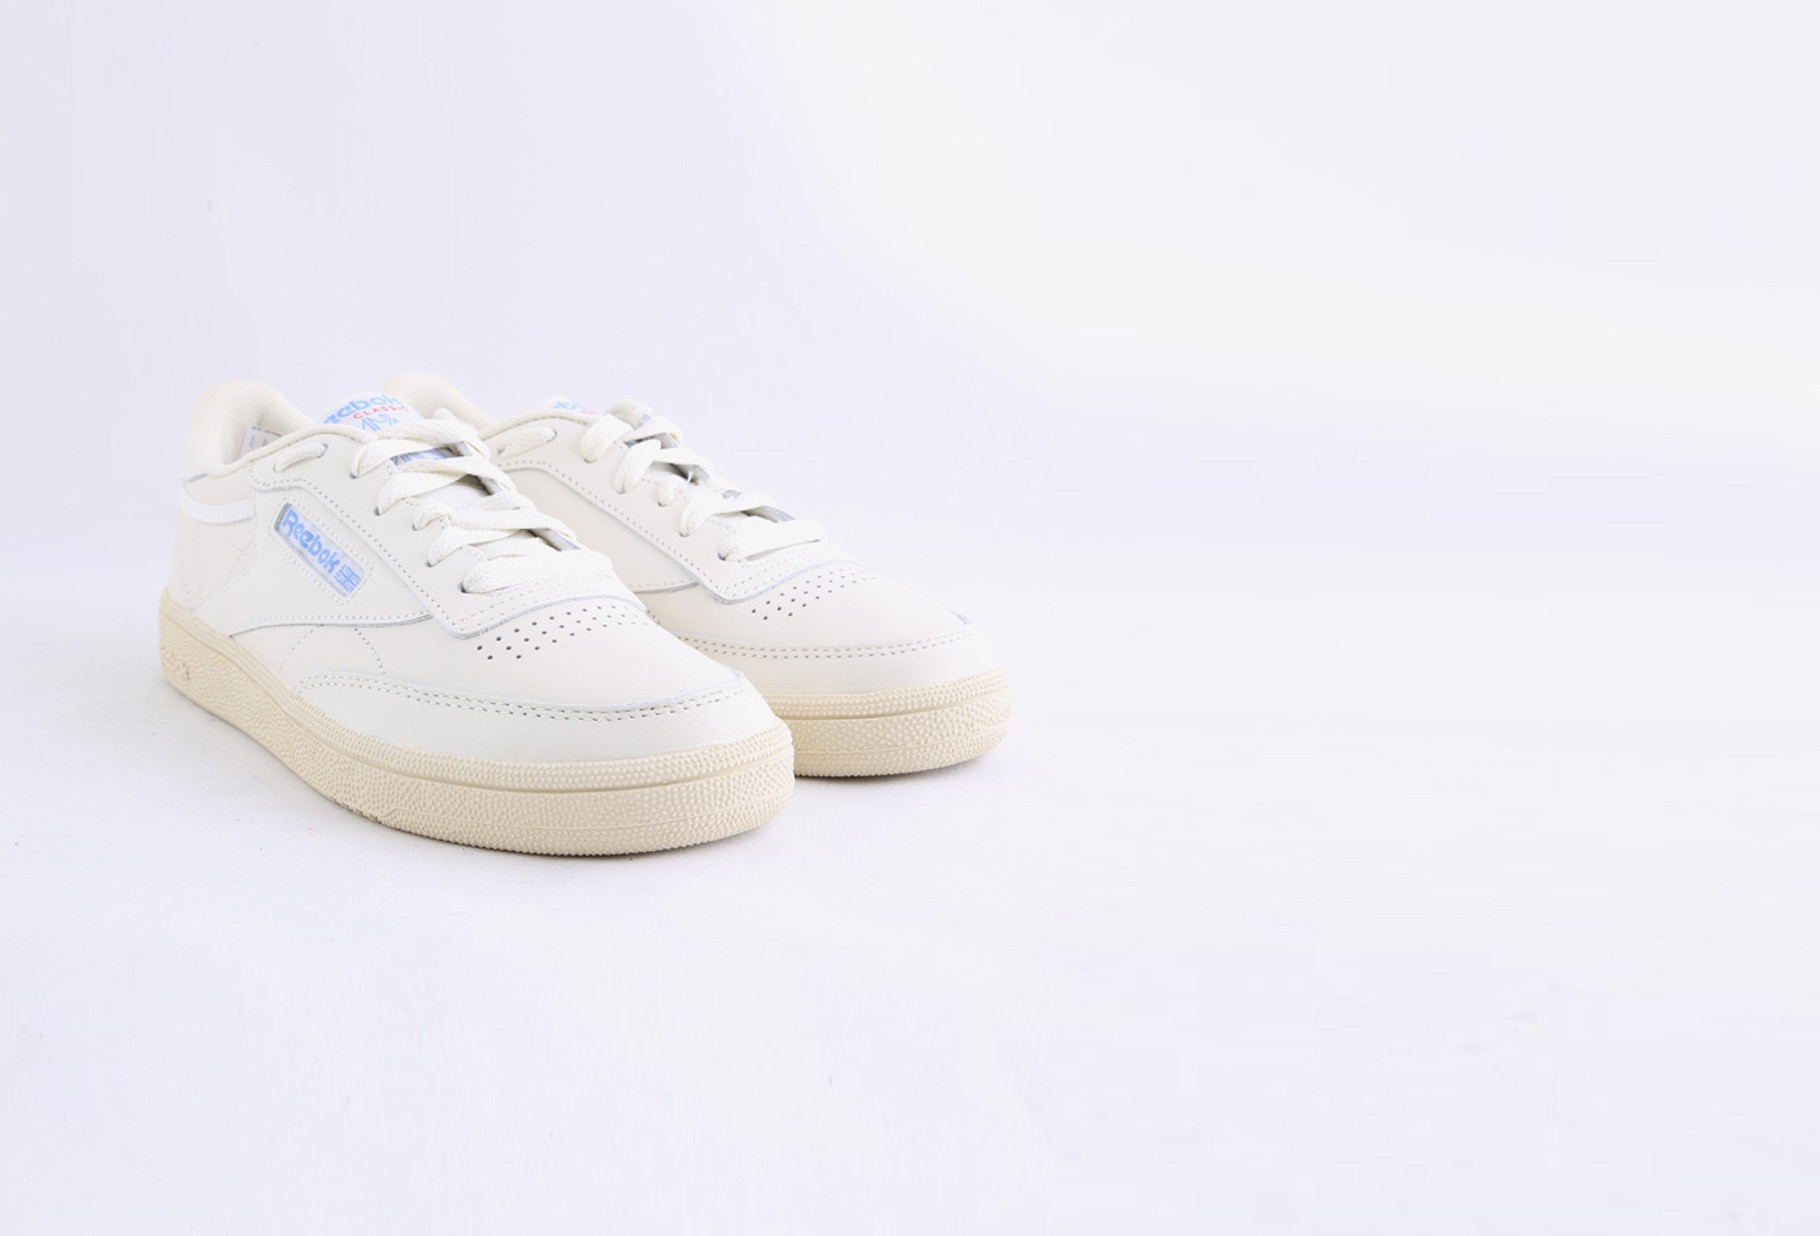 REEBOK FOR WOMAN / Club c 85 Paper white